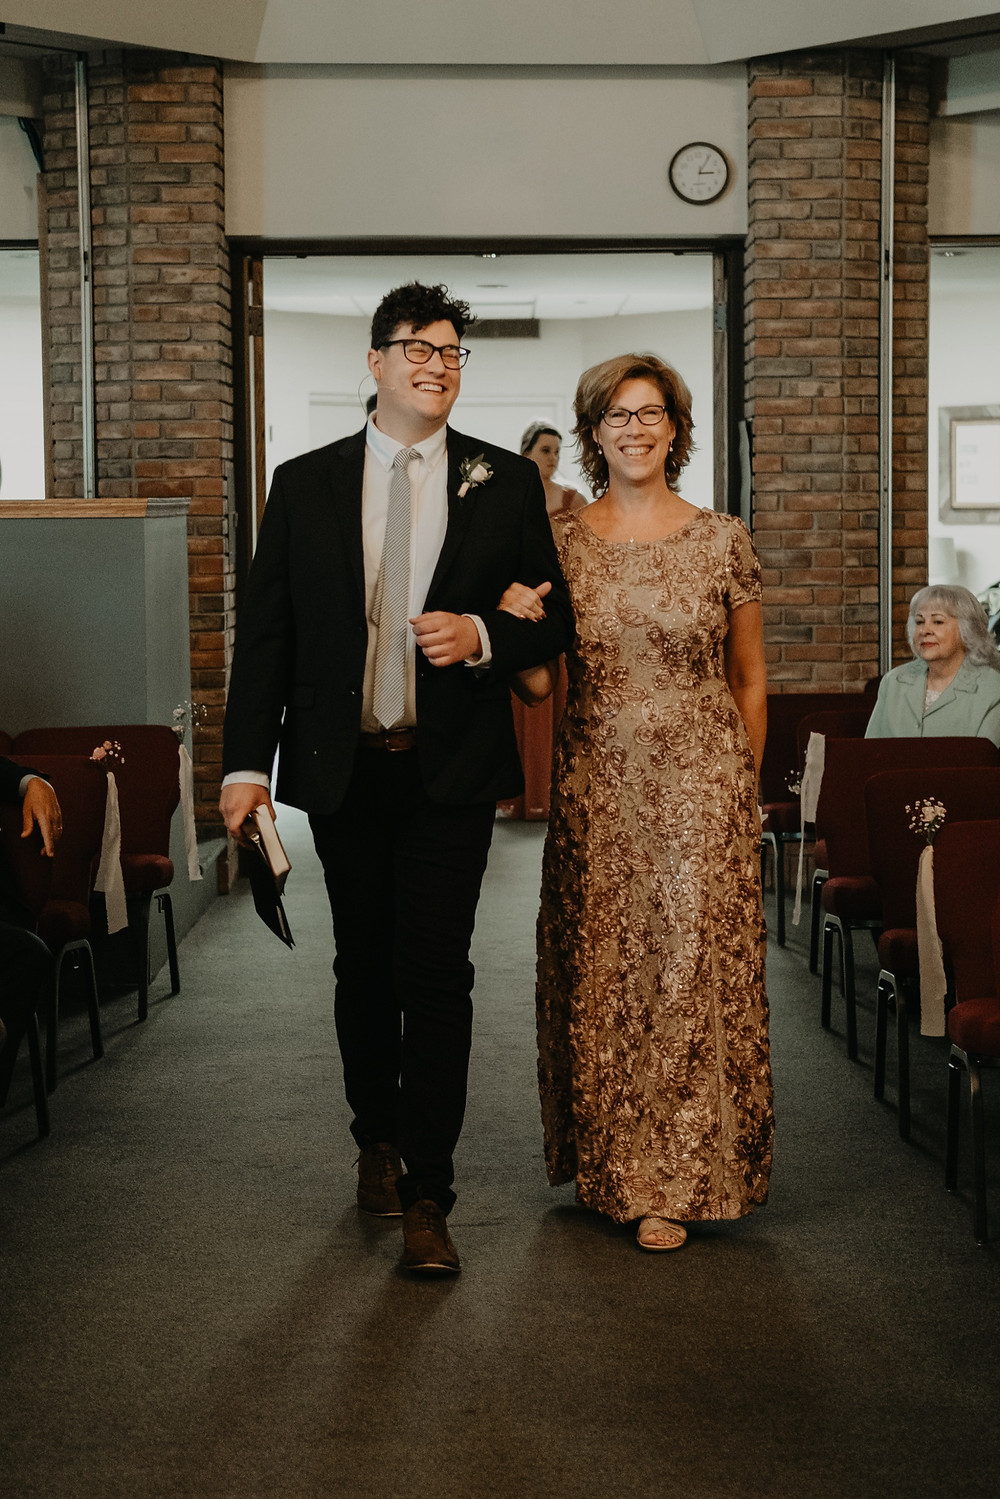 Wedding processional at church wedding. Photographed by Nicole Leanne Photography.